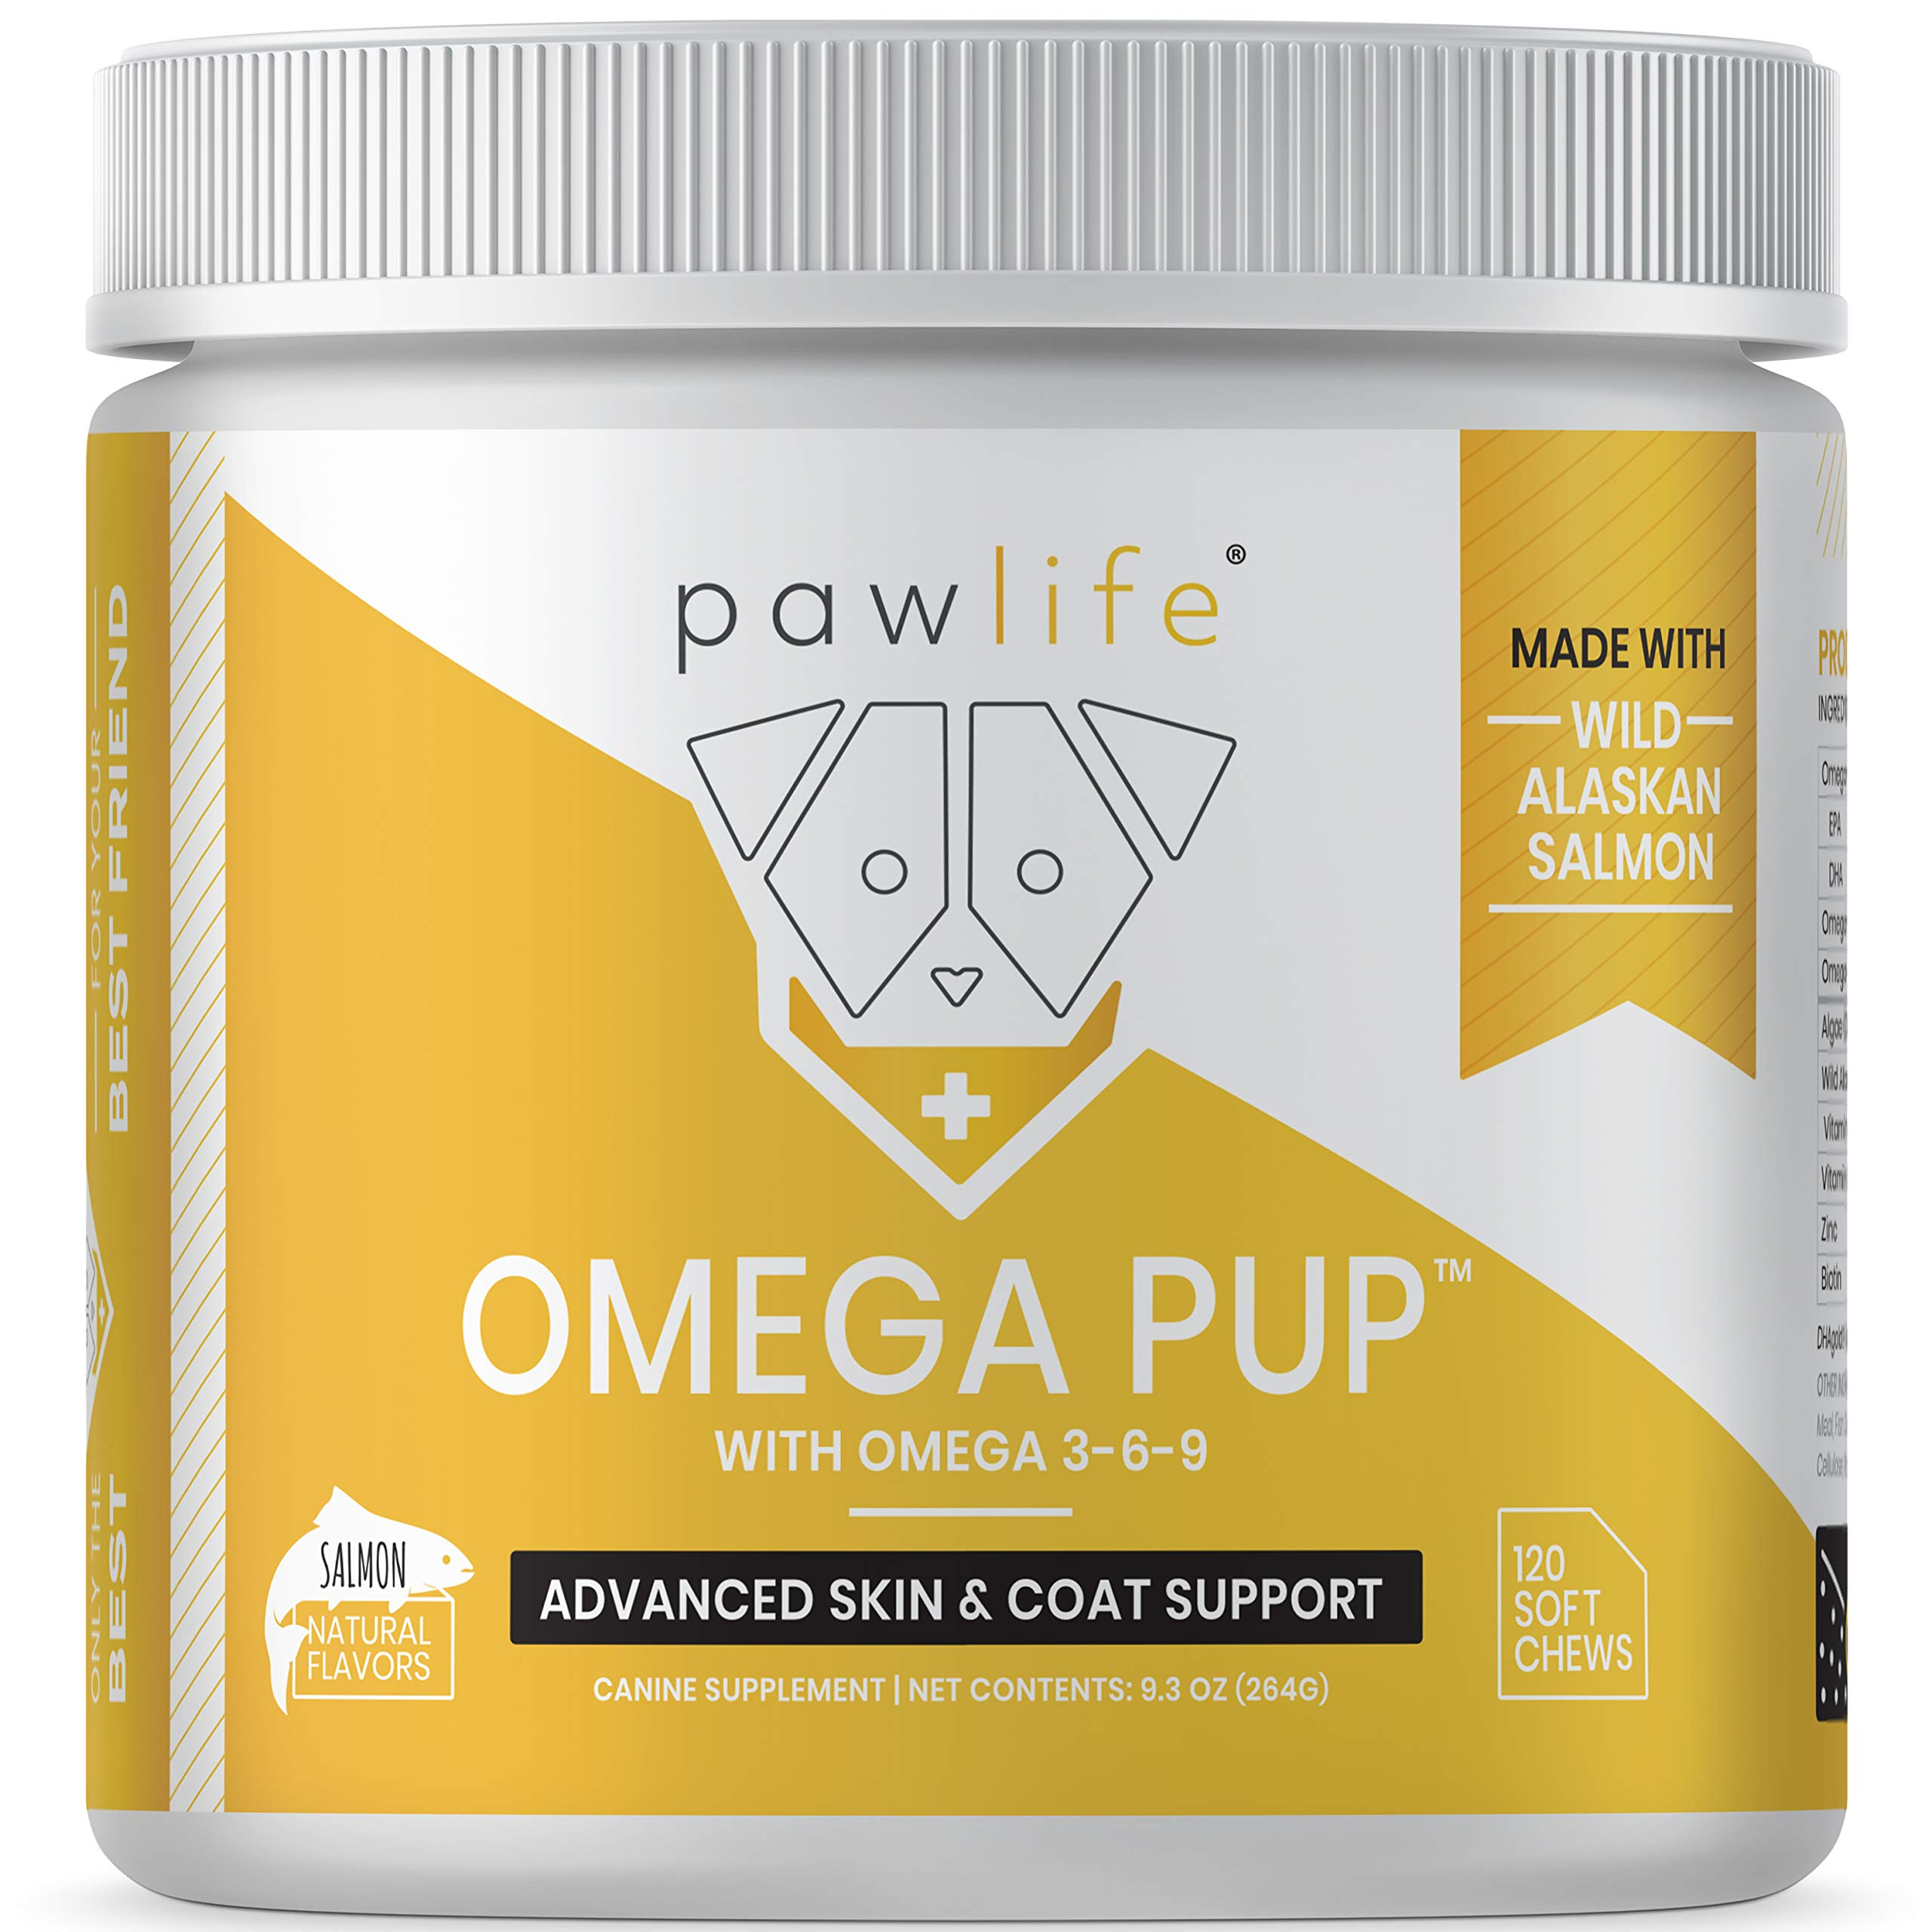 pawlife Omega Pup, Salmon Fish Oil Supplement for Dogs, 120 Salmon Soft Chews